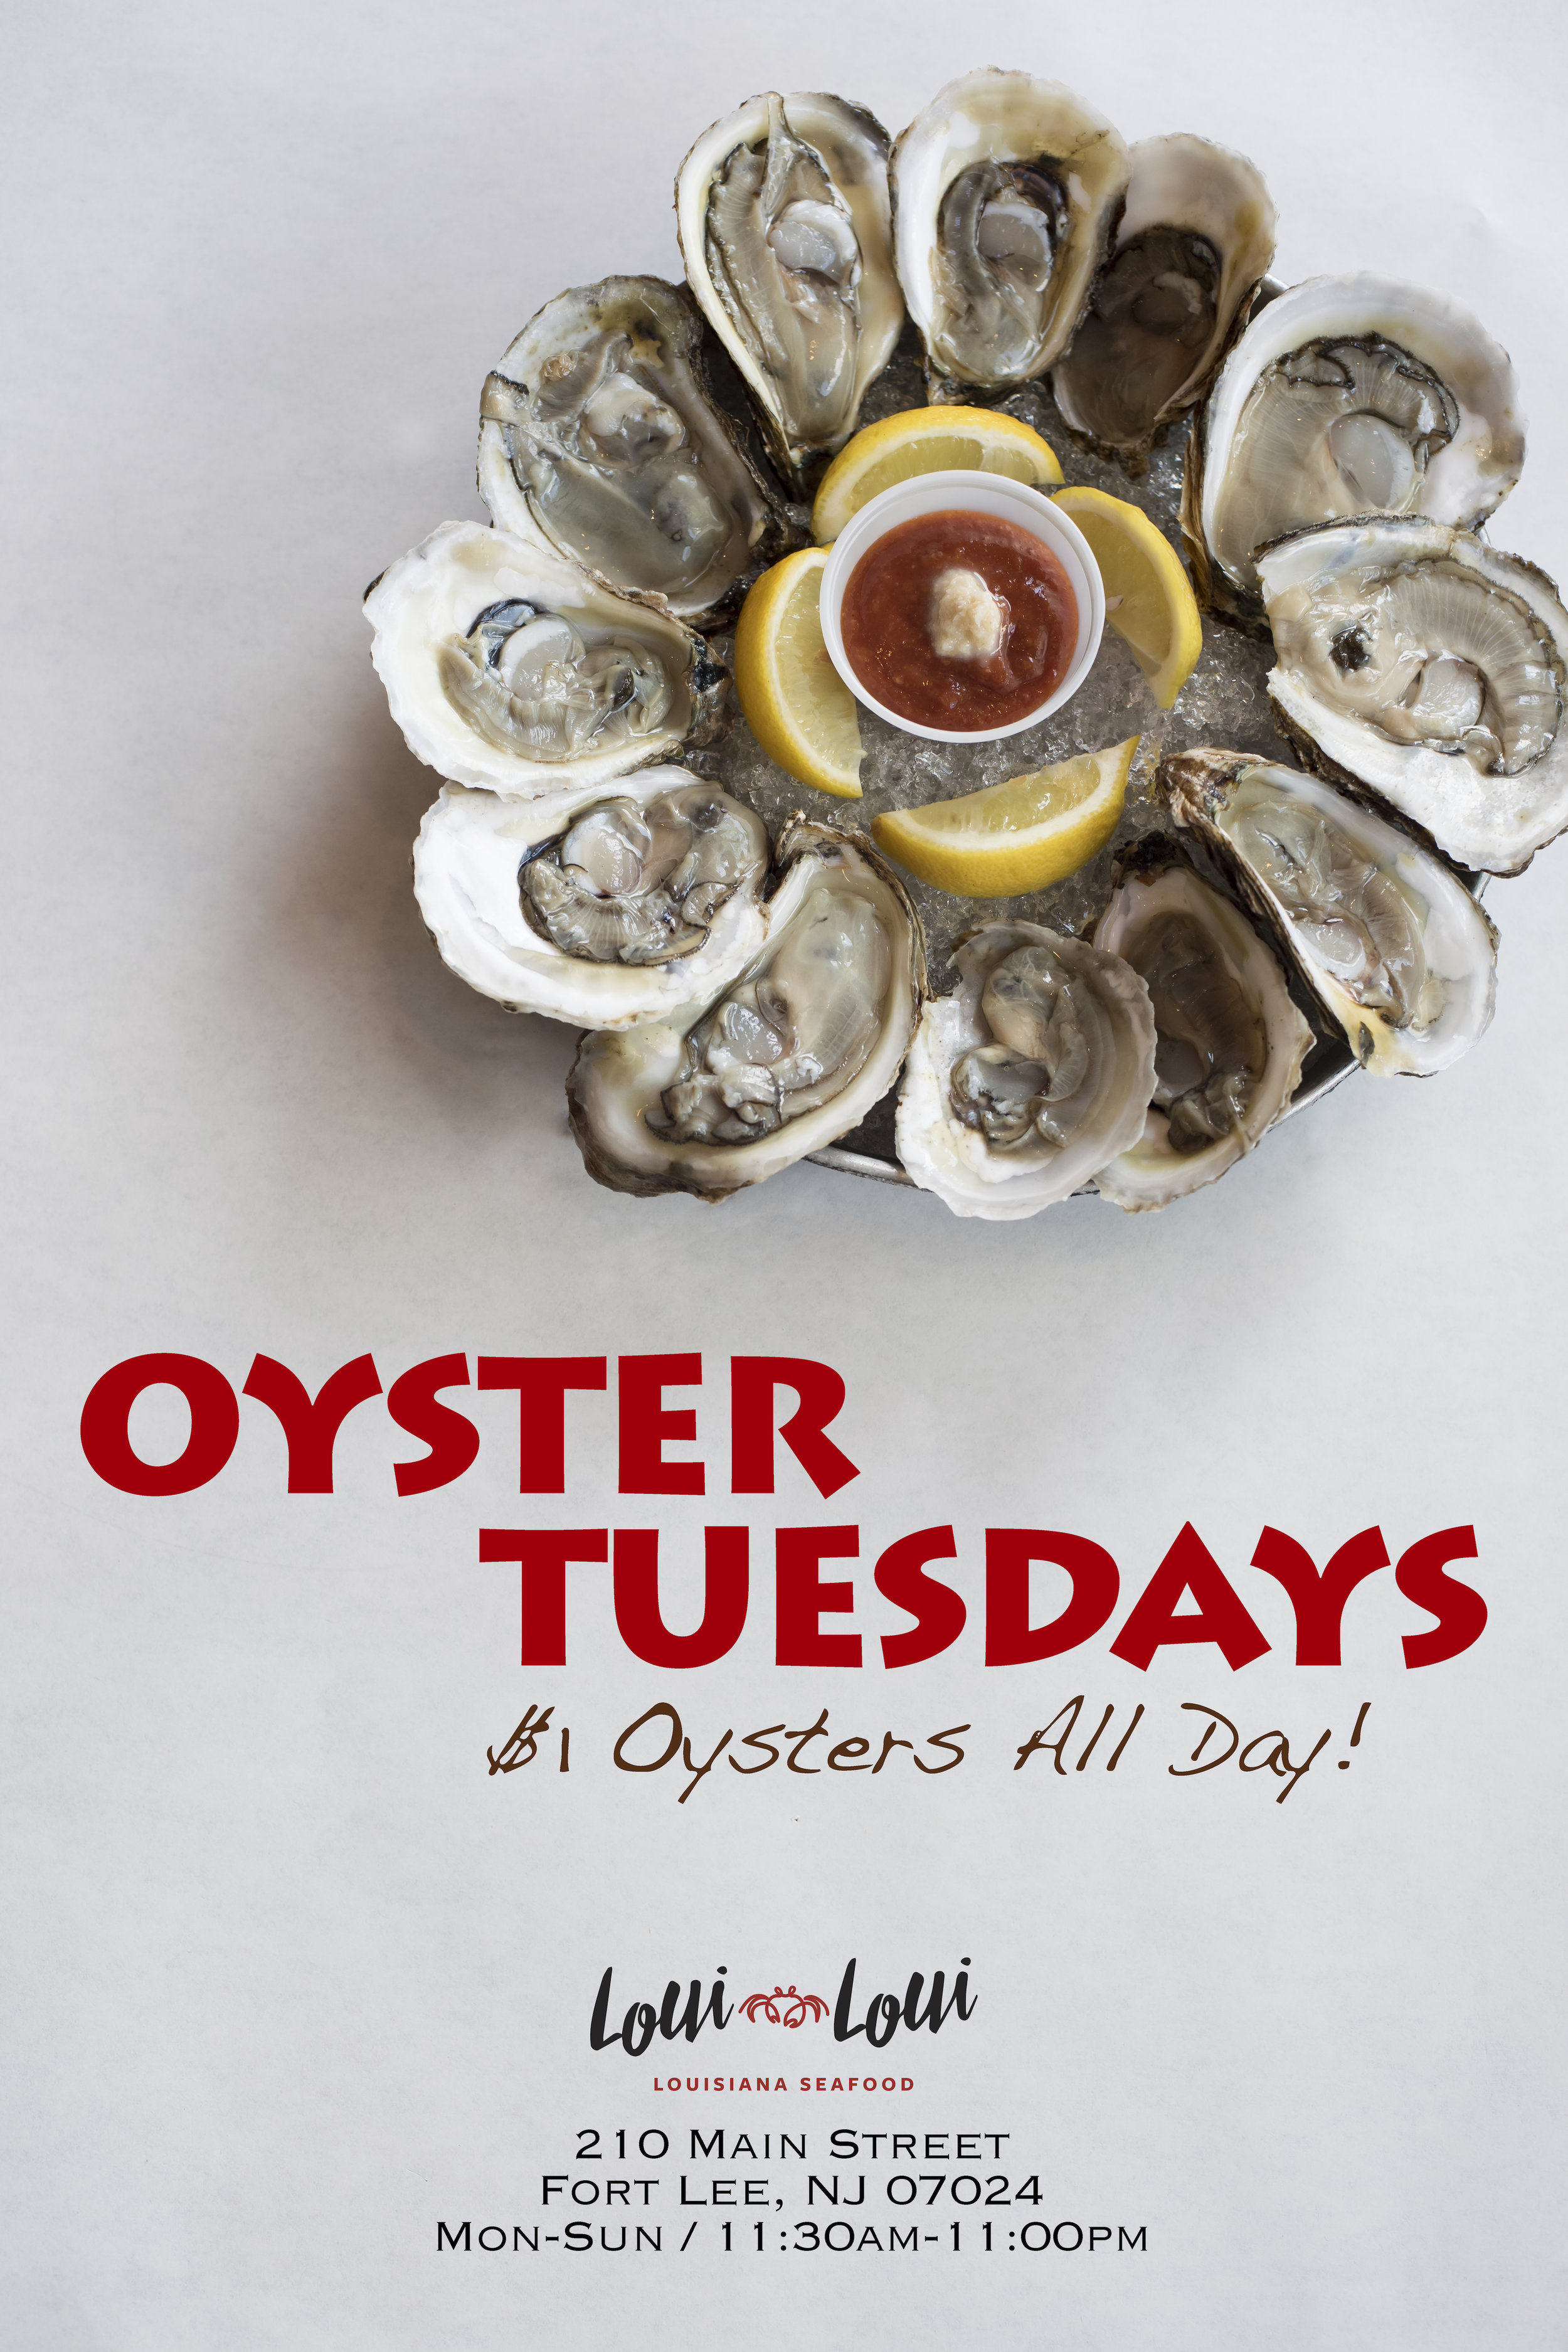 $1 Oysters All Day Tuesday -